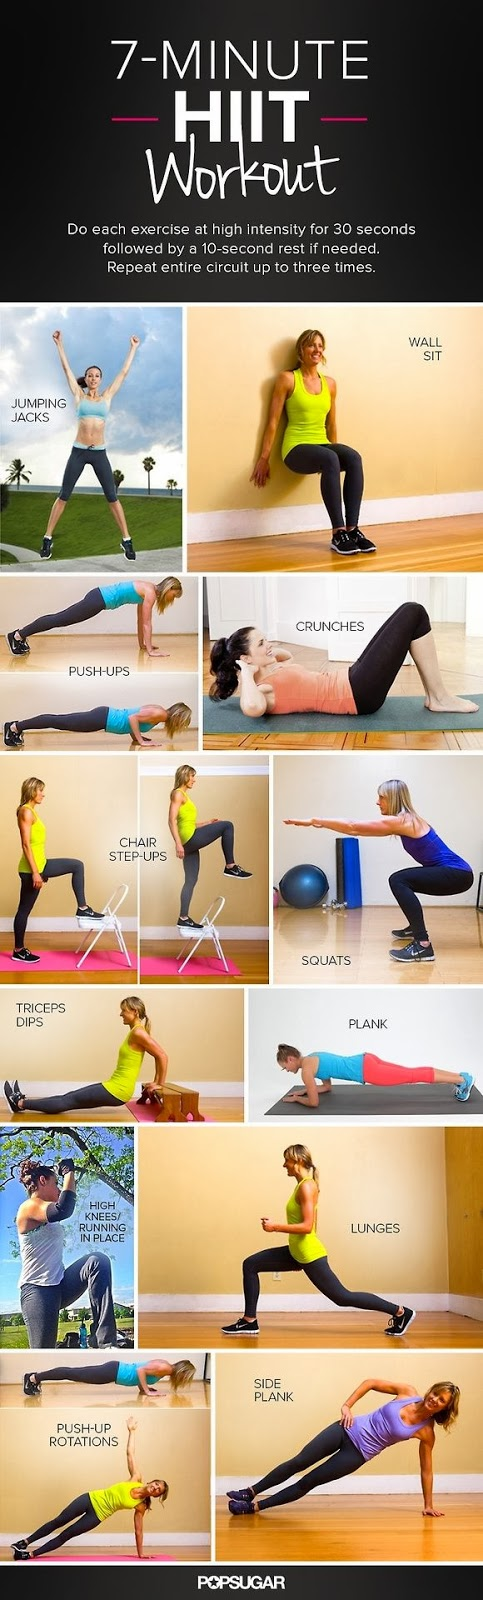 A 7-minute HIIT workout!